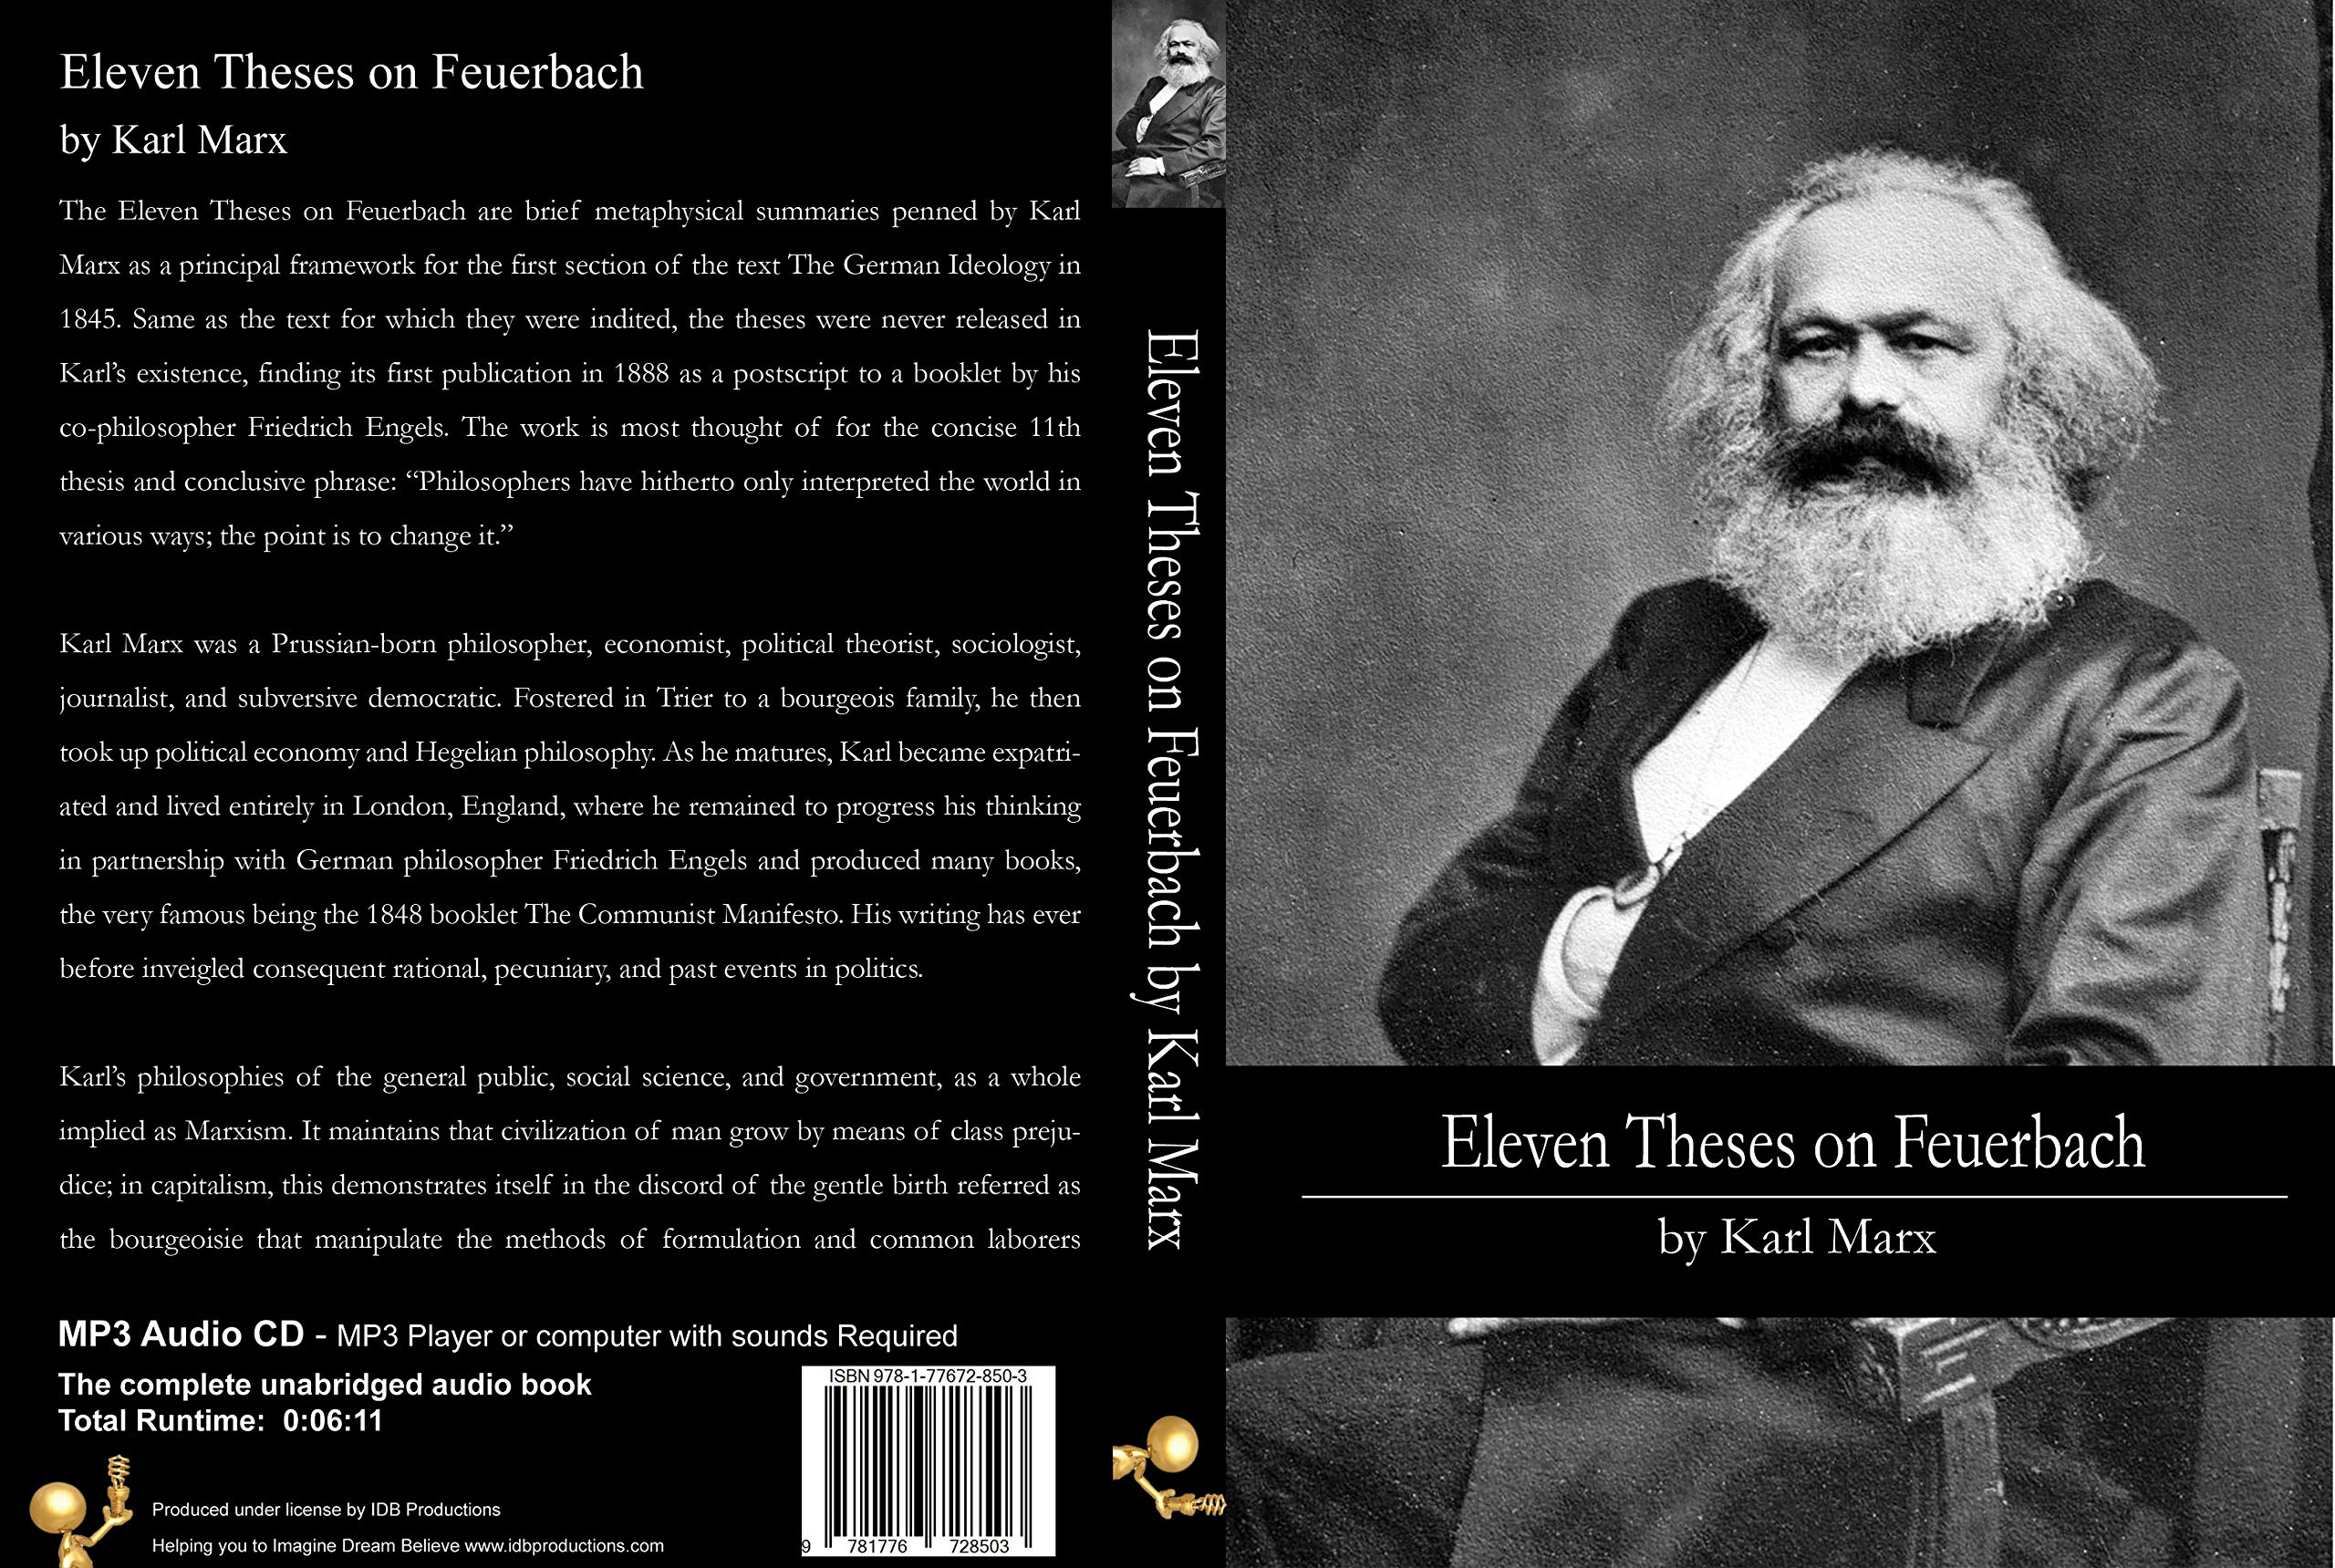 Marx feuerbach 11th thesis childrens essay outlines